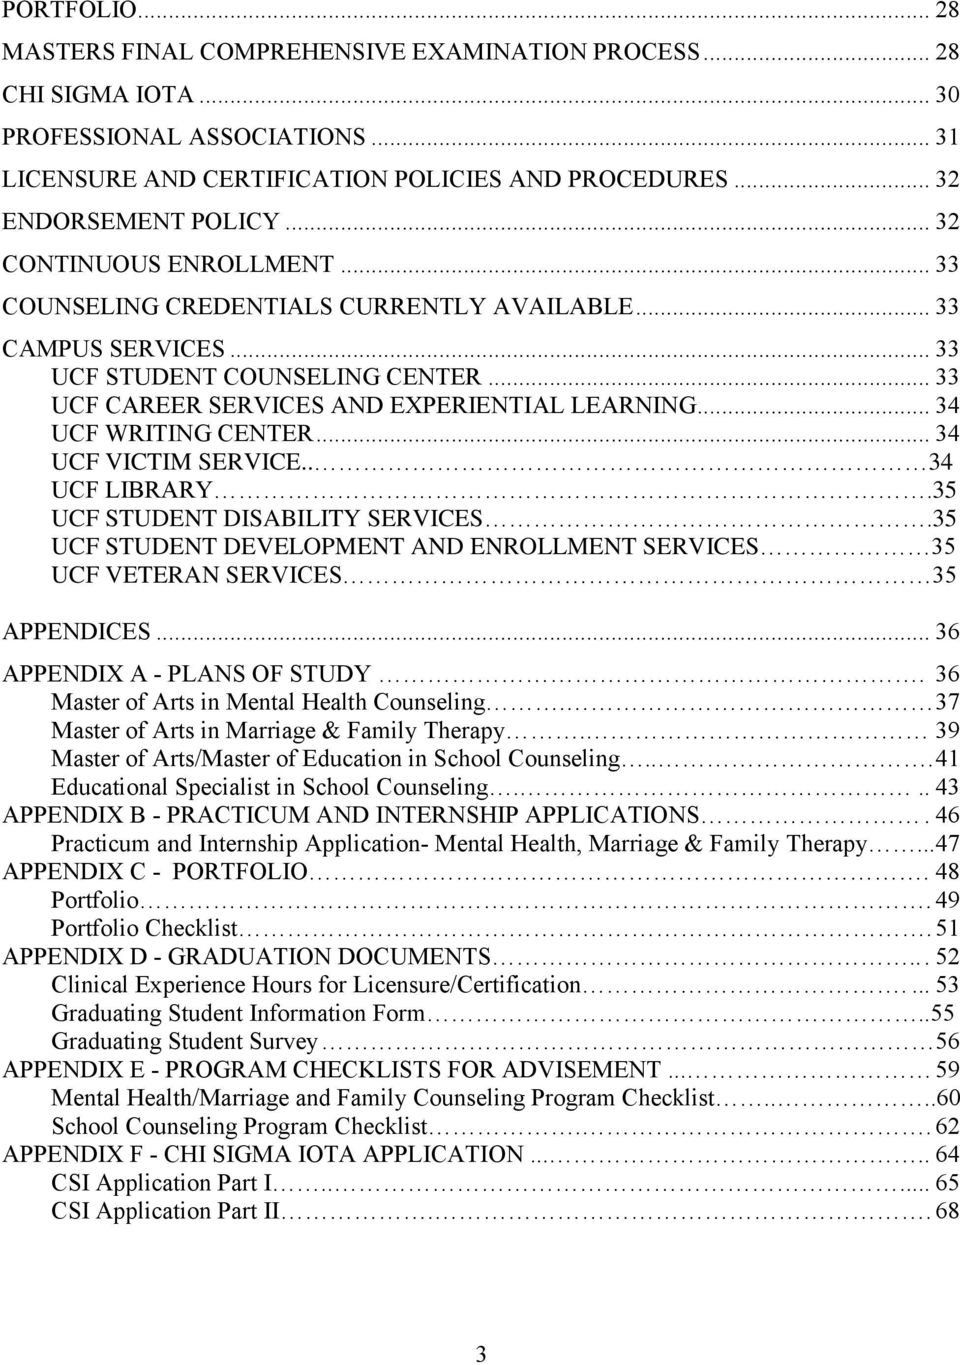 .. 34 UCF VICTIM SEVICE.. 34 UCF LIBAY.35 UCF STUDENT DISABILITY SEVICES.35 UCF STUDENT DEVELOPMENT AND ENOLLMENT SEVICES 35 UCF VETEAN SEVICES 35 APPENDICES... 36 APPENDIX A - PLANS OF STUDY.